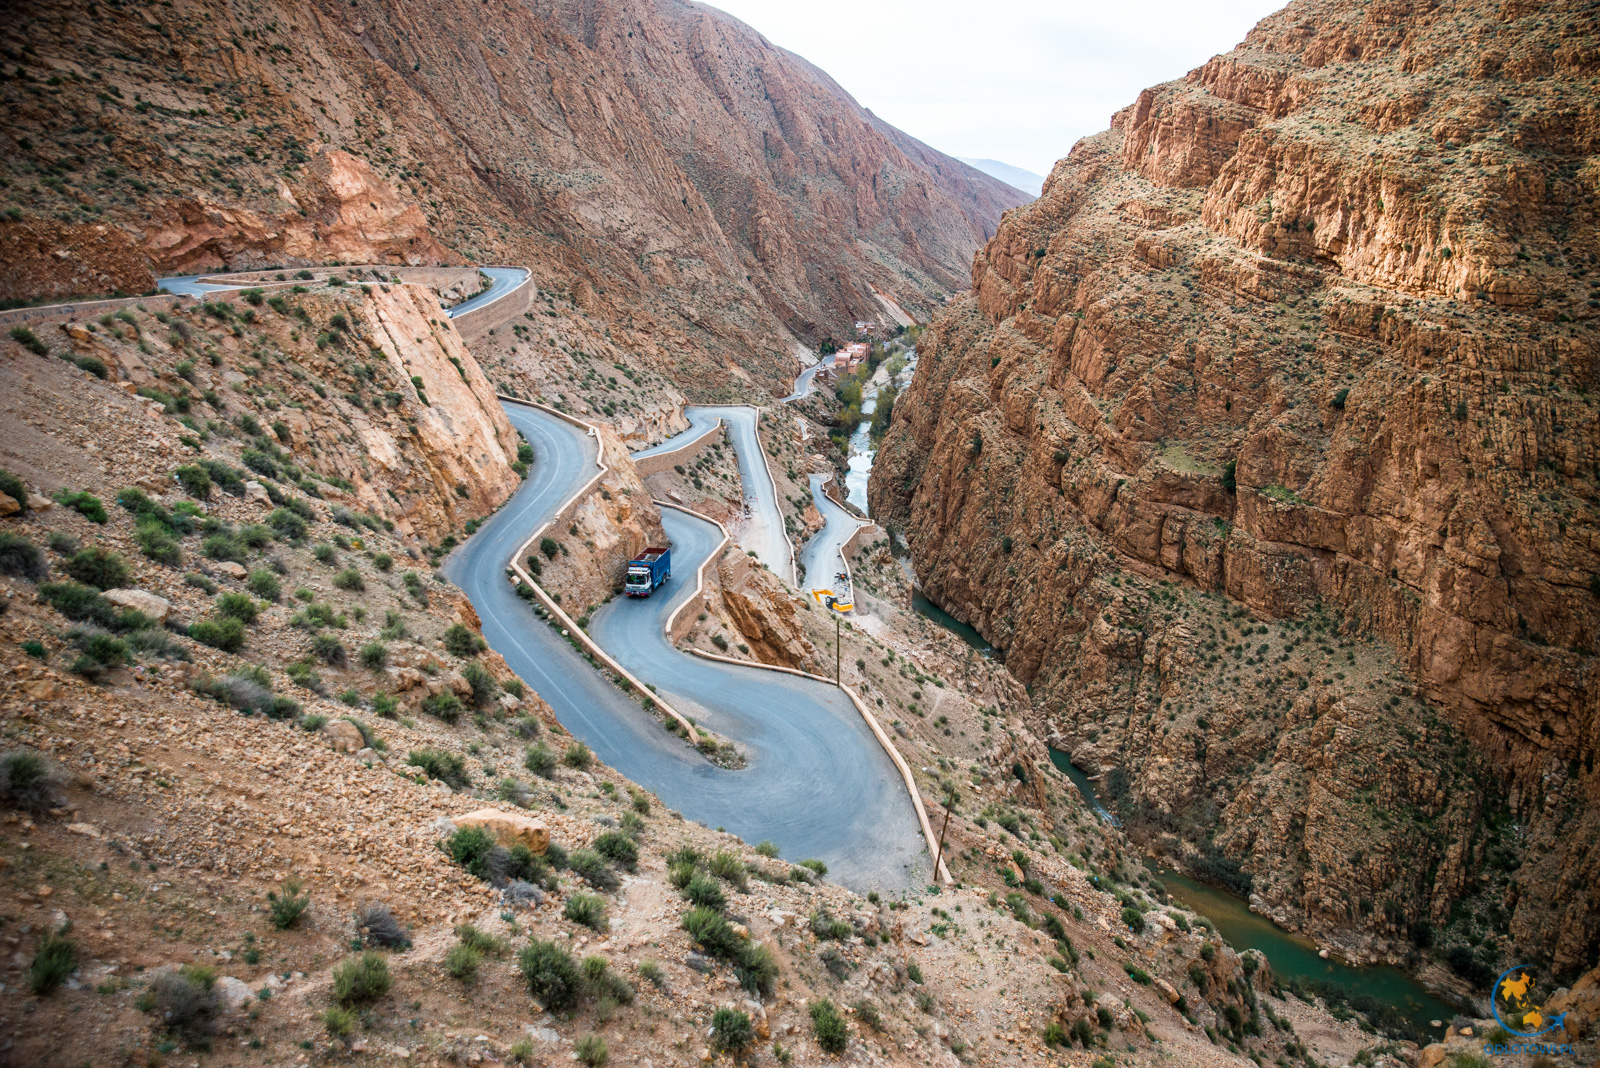 Kręte drogi doliny Dades | Dades Gorge - Stunning Winding Road